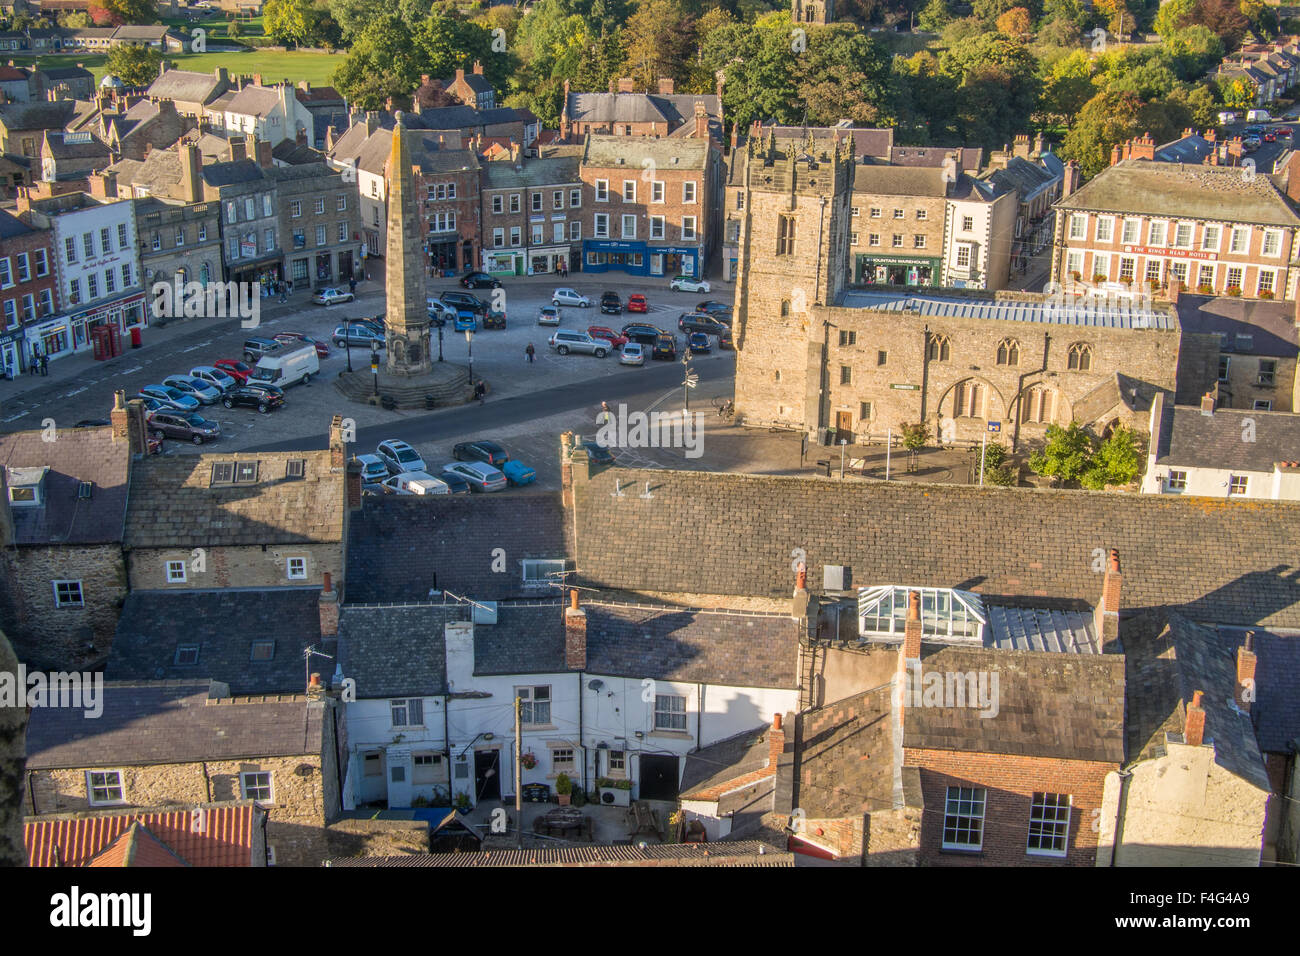 Richmond town centre including the Obelisk and Church of the Holy trinity, Richmondshire, North Yorkshire, England. - Stock Image